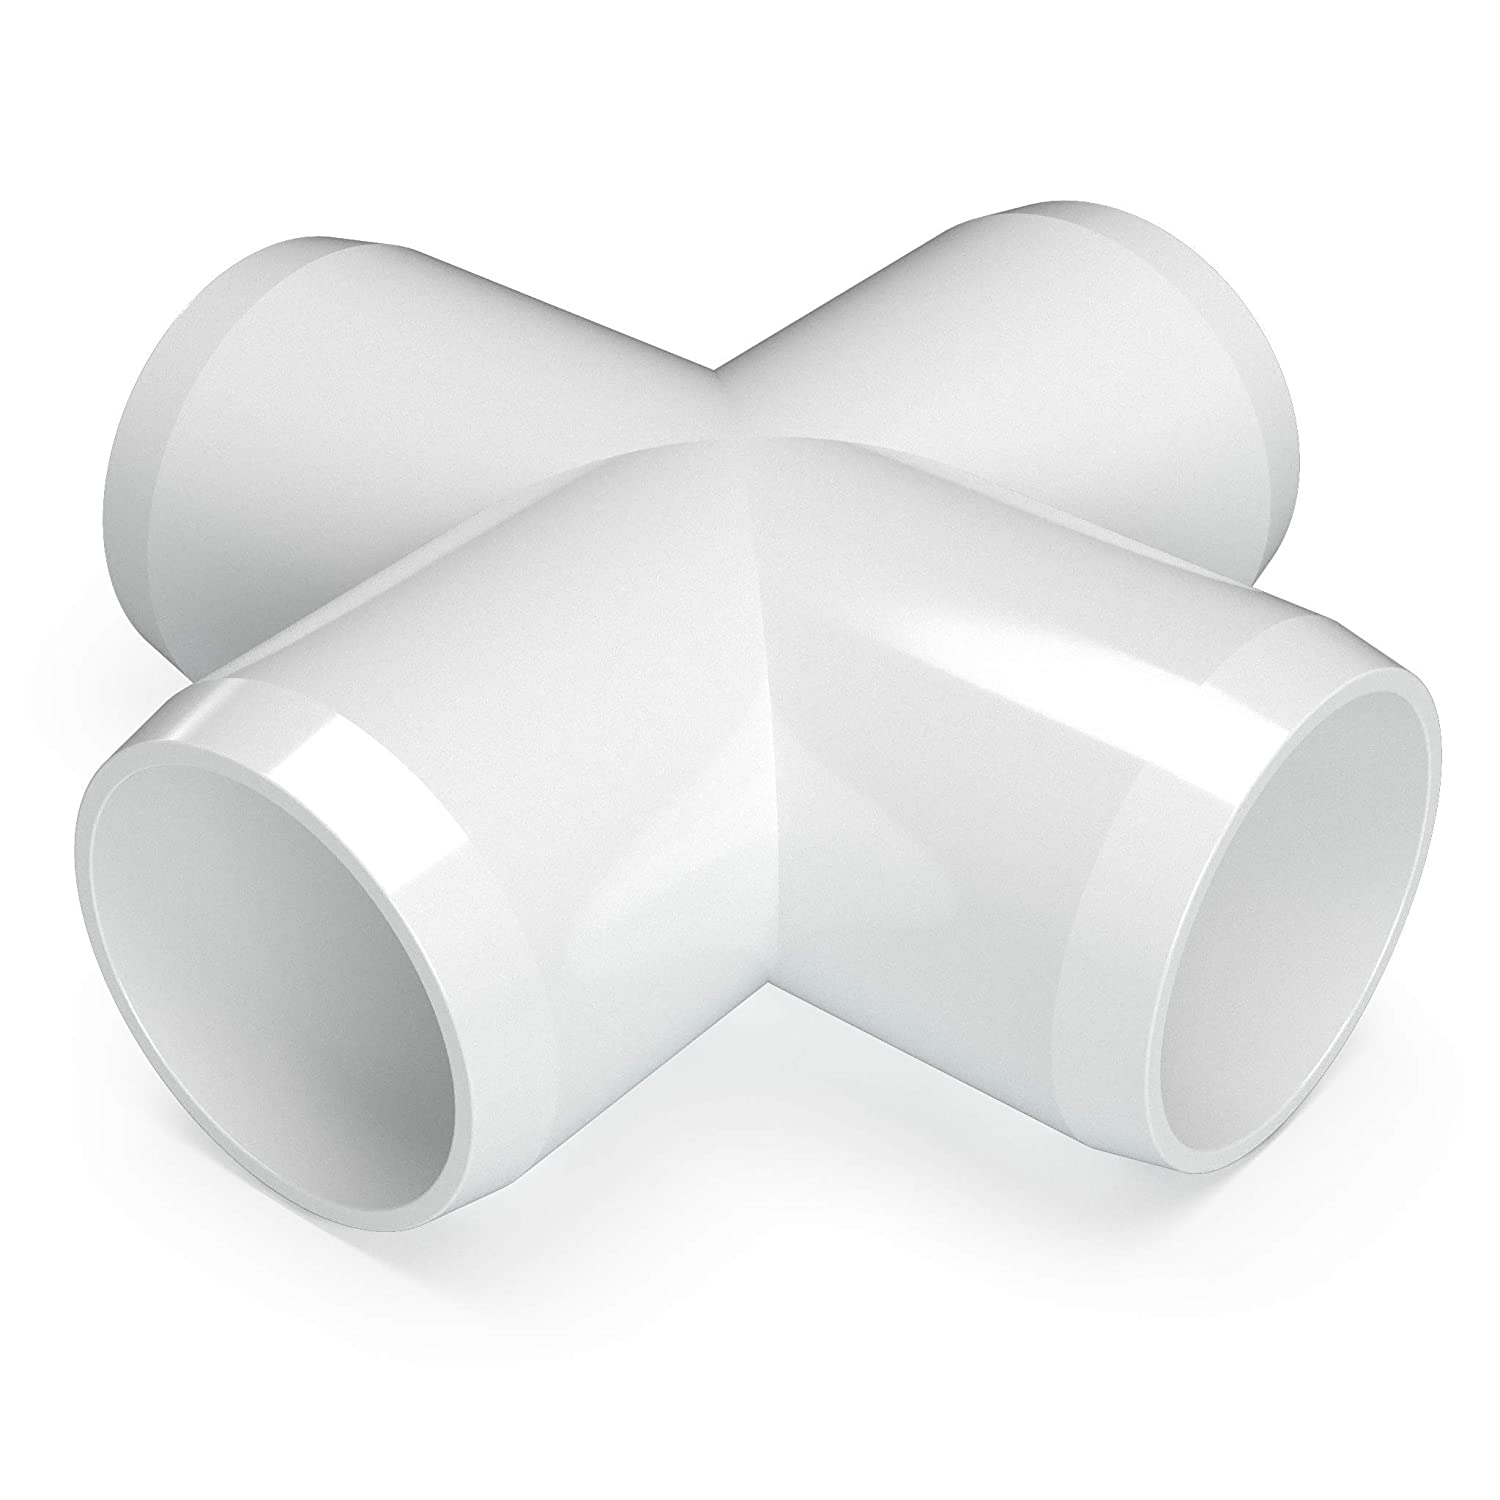 "FORMUFIT F001CRX-WH-4 Cross PVC Fitting, Furniture Grade, 1"" Size, White (Pack of 4)"